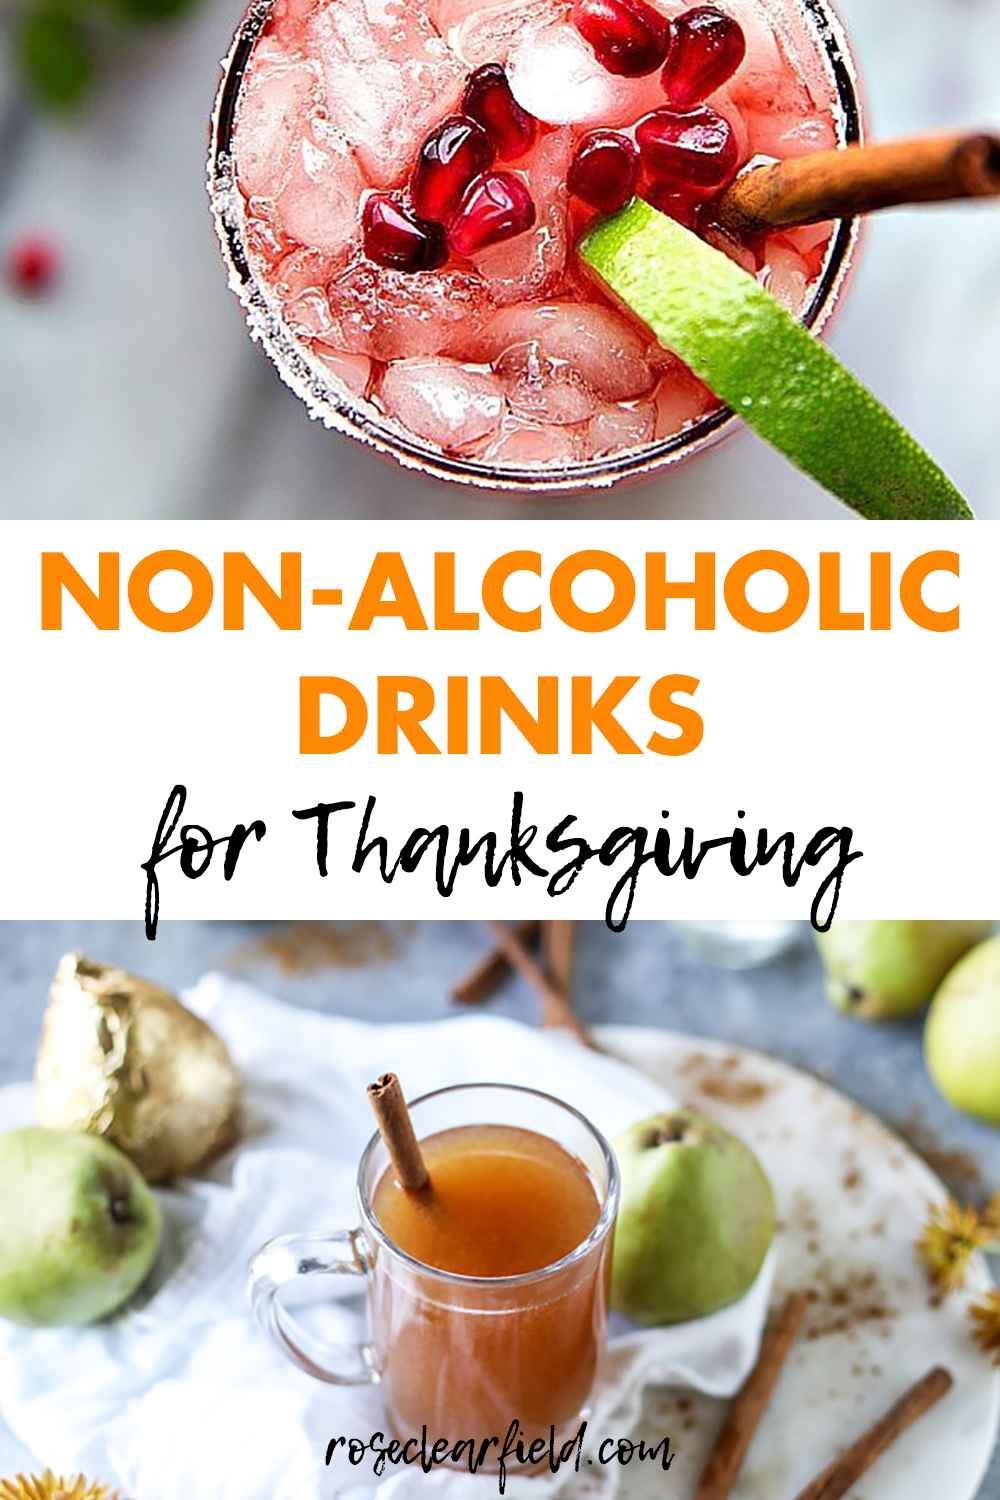 Non-Alcoholic Drinks for Thanksgiving 2